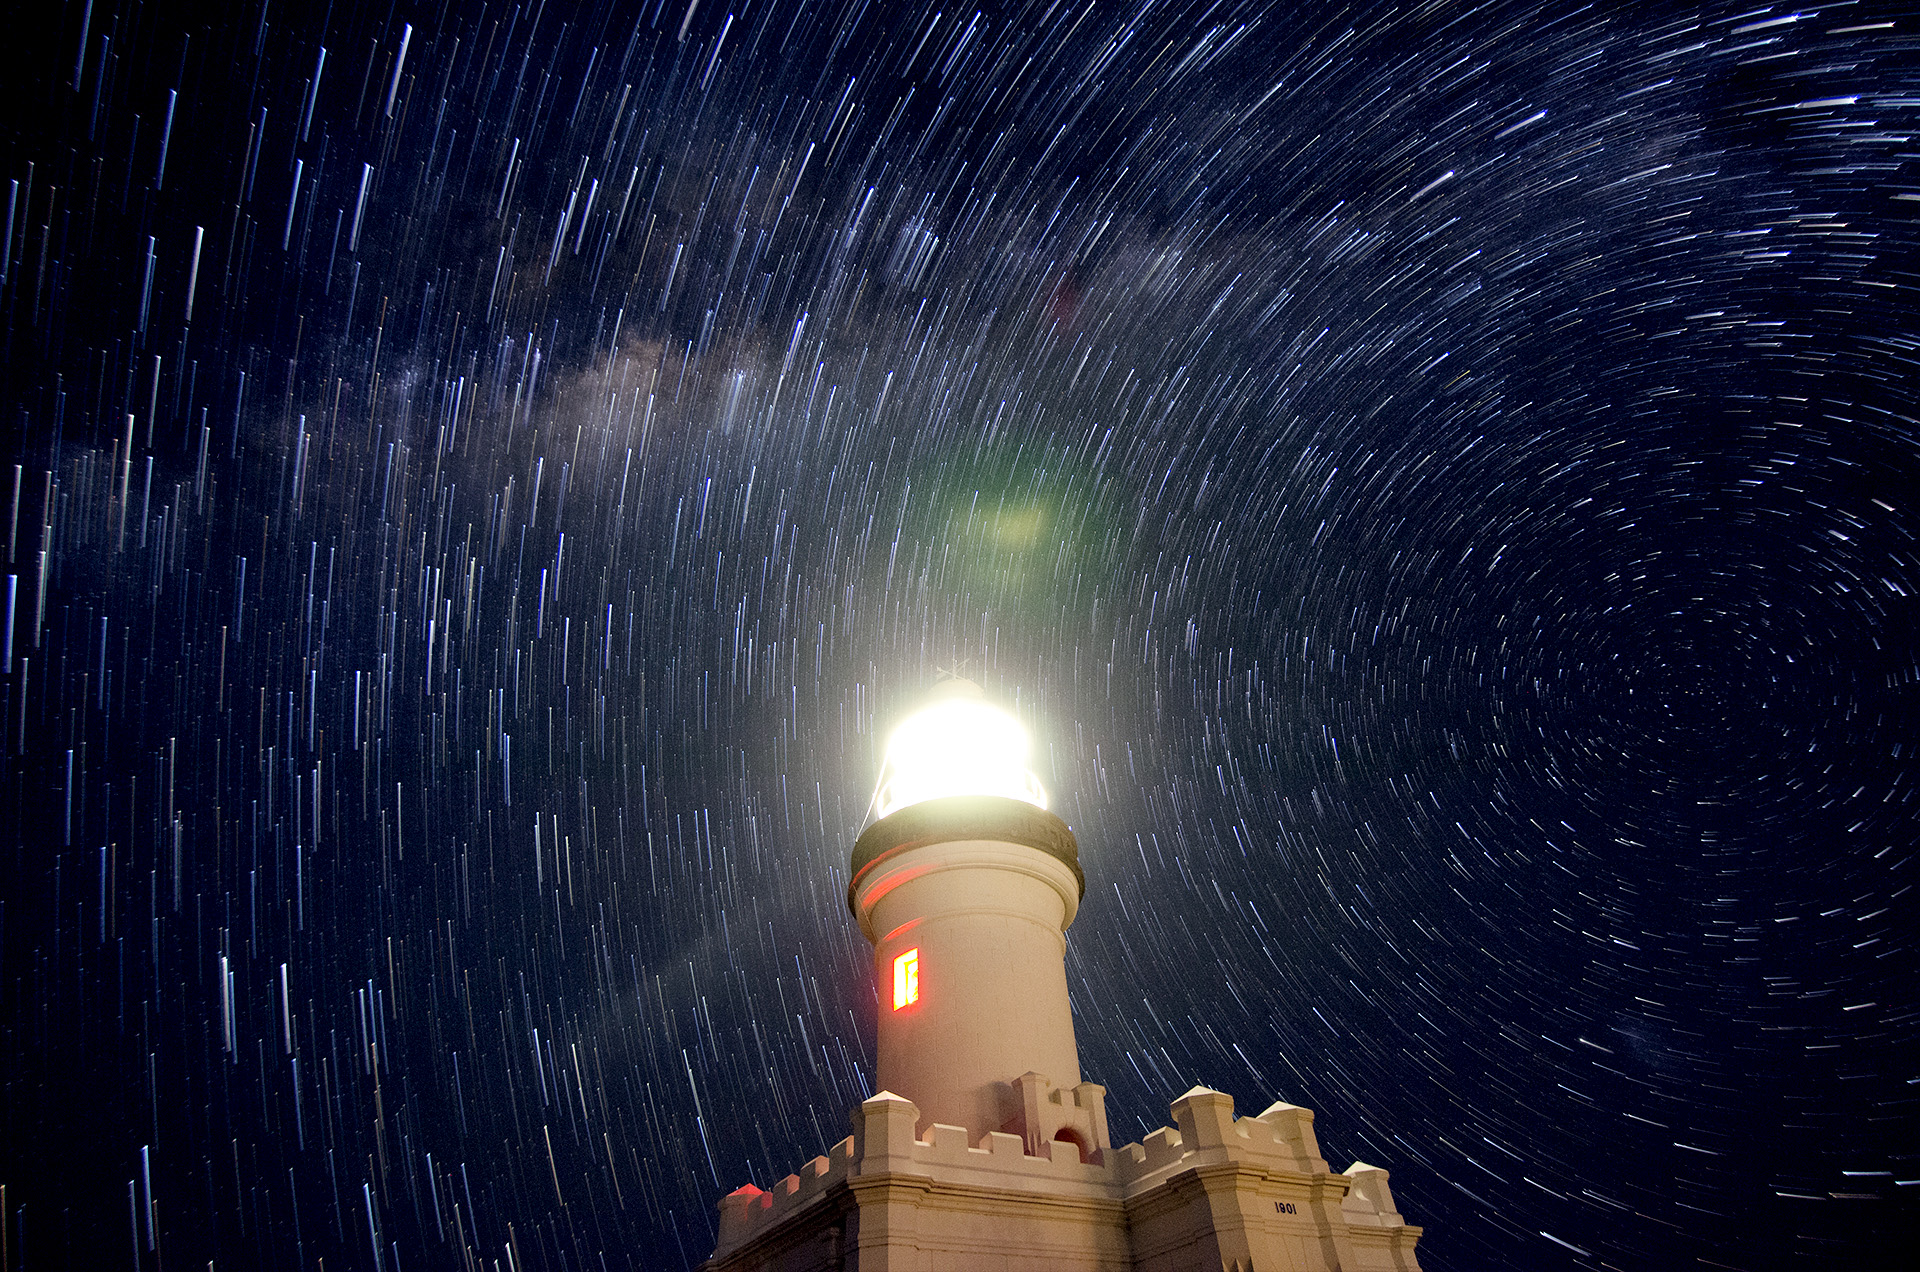 Black Hole Animated Wallpaper Star Trails Over Byron Bay Lighthouse Deography By Dylan